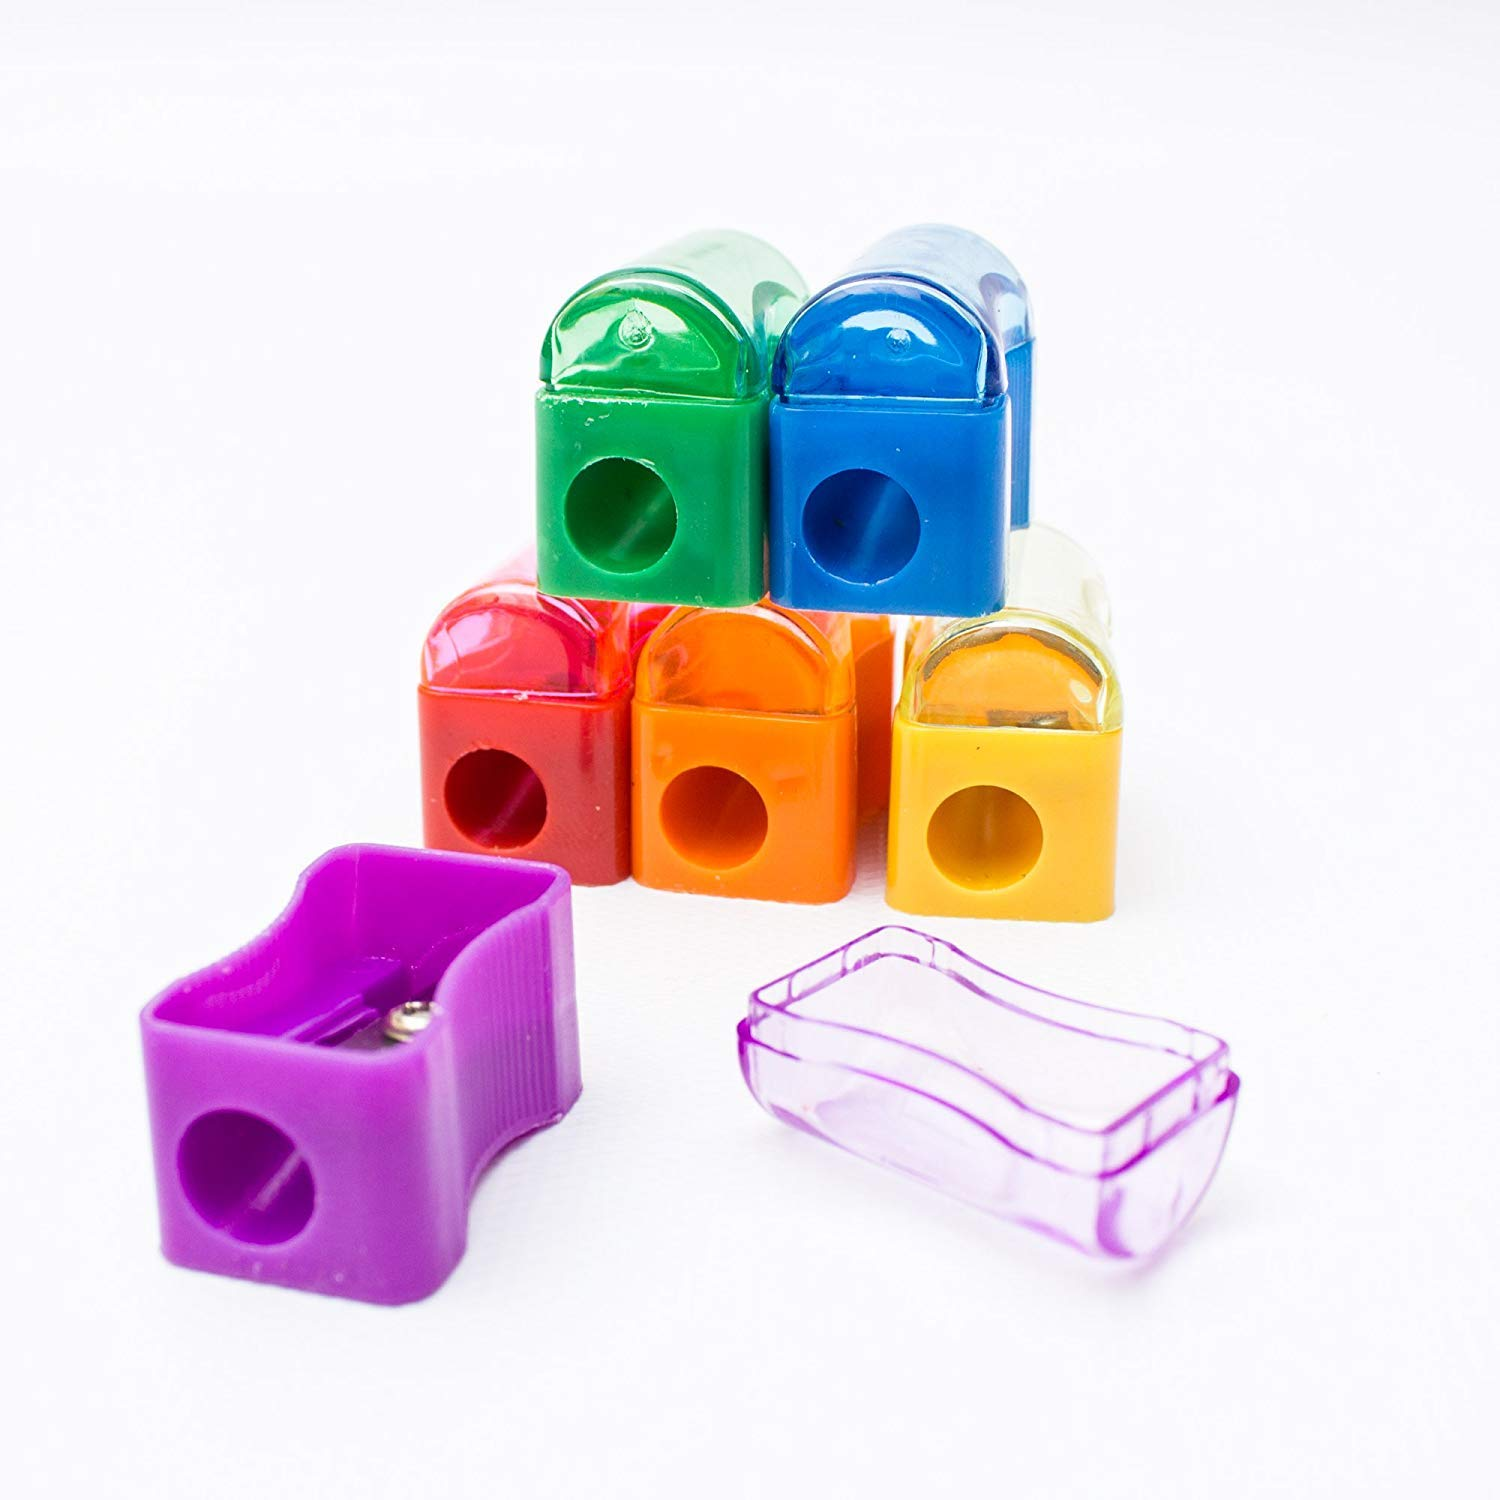 Fun Wave 72 Pack Kids Plastic Manual Pencil Sharpener with Receptacle- Multicolor Assortment- for Home and School Give Aways Gifts Great for Goodie Bags Office School Supplies